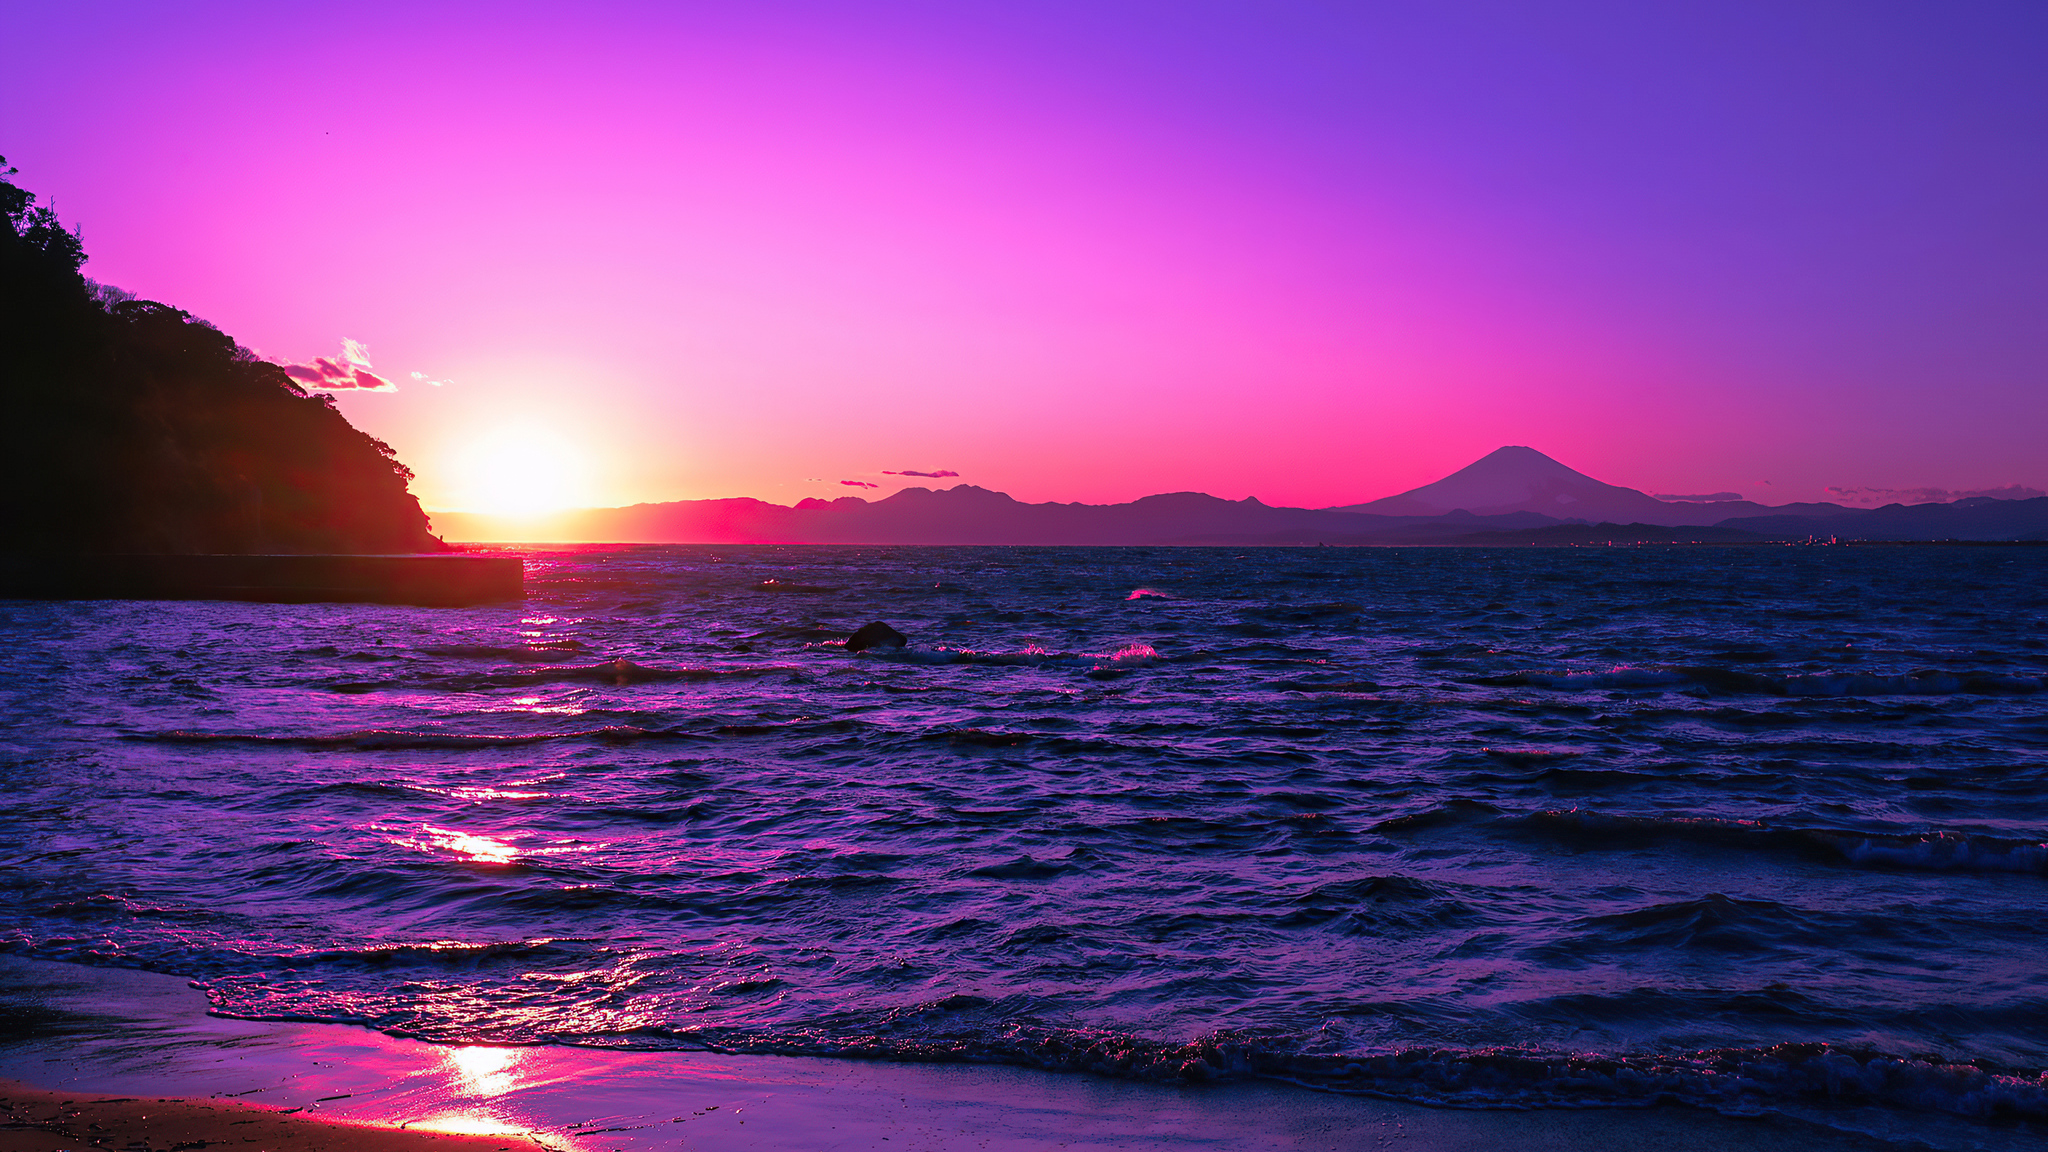 2048x1152 Beautiful Evening Purple Sunset 4k 2048x1152 Resolution Hd 4k Wallpapers Images Backgrounds Photos And Pictures